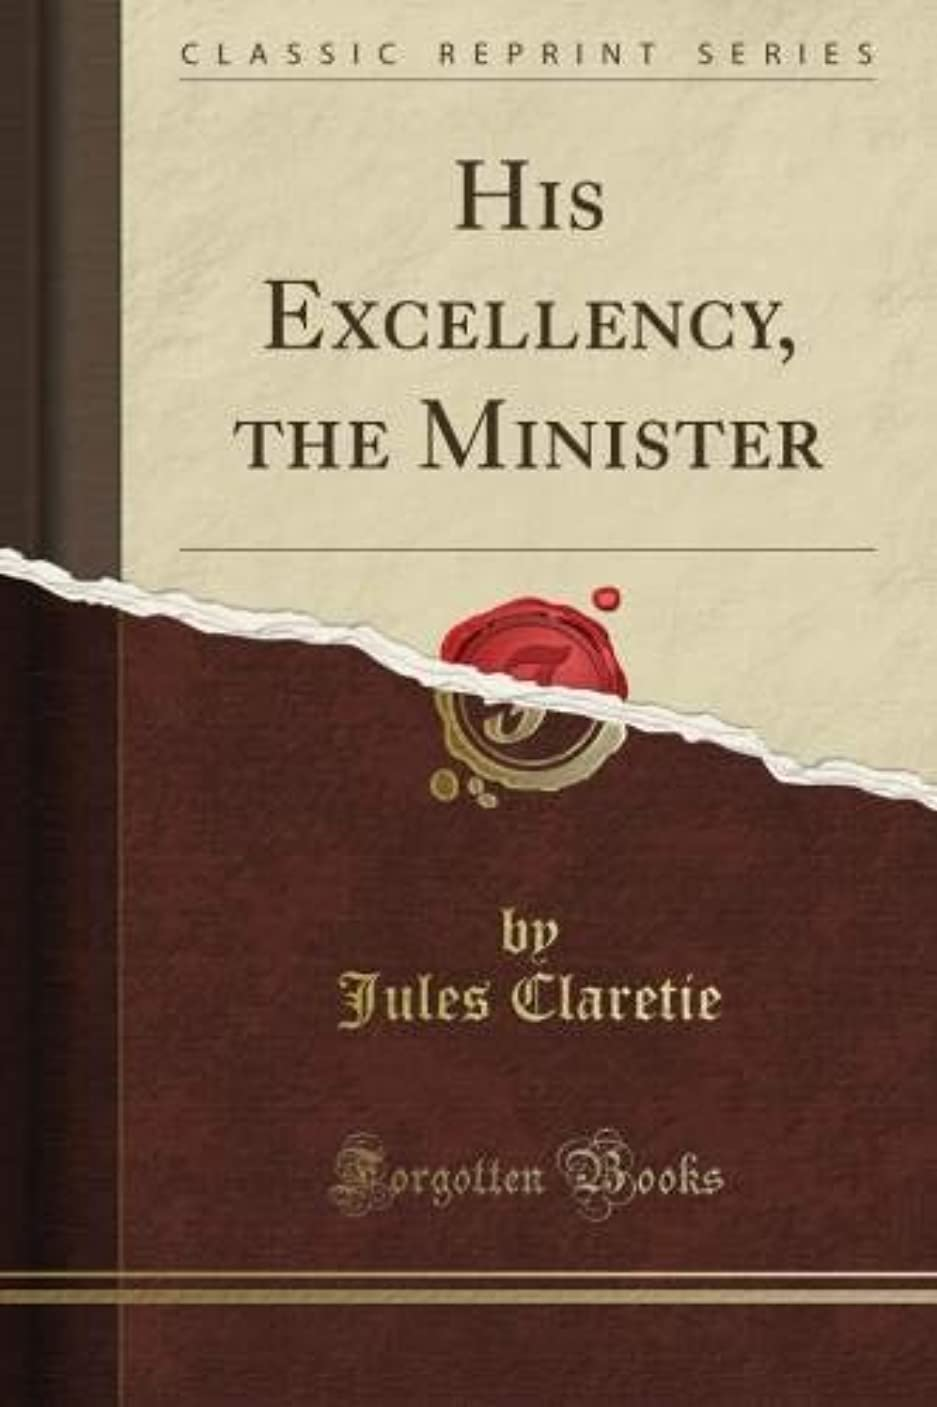 原稿ラッカス効果的にHis Excellency, the Minister (Classic Reprint)